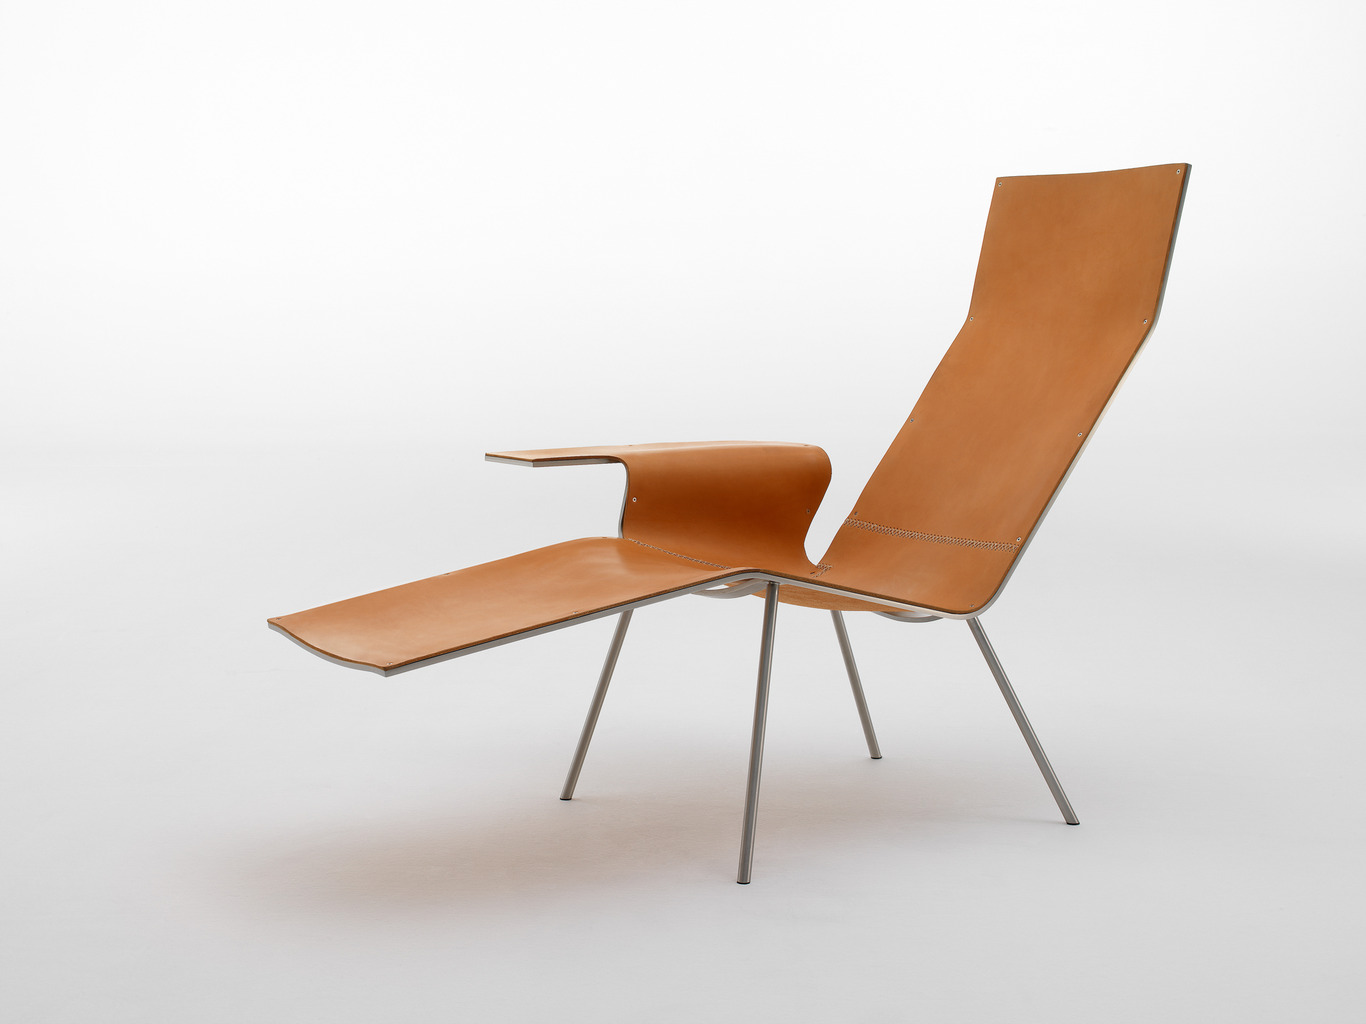 Leather lounge chair Maarten van Severen